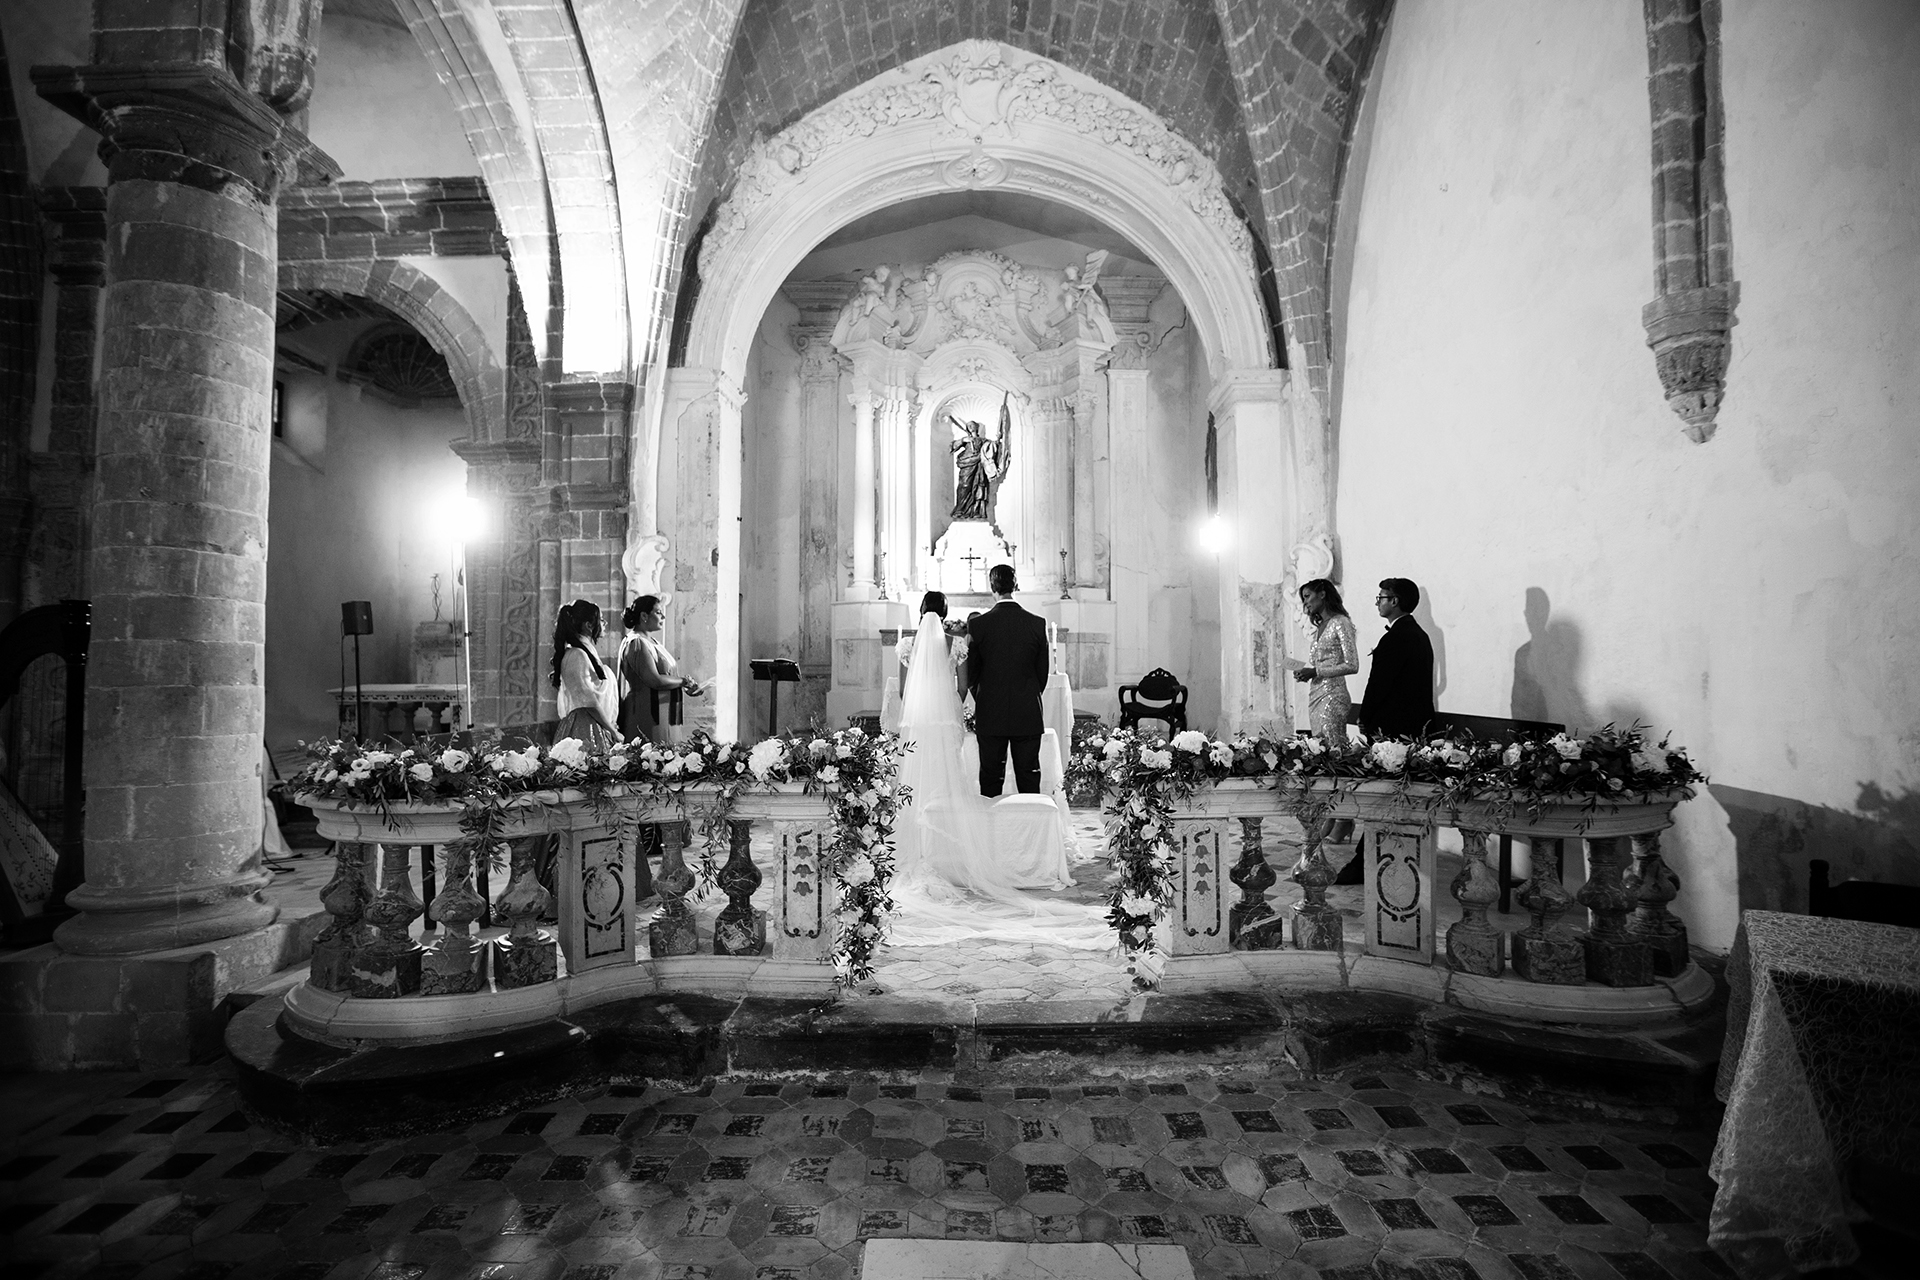 Sicily and Italy Wedding Photographers | The couple takes their vows in a historic Church